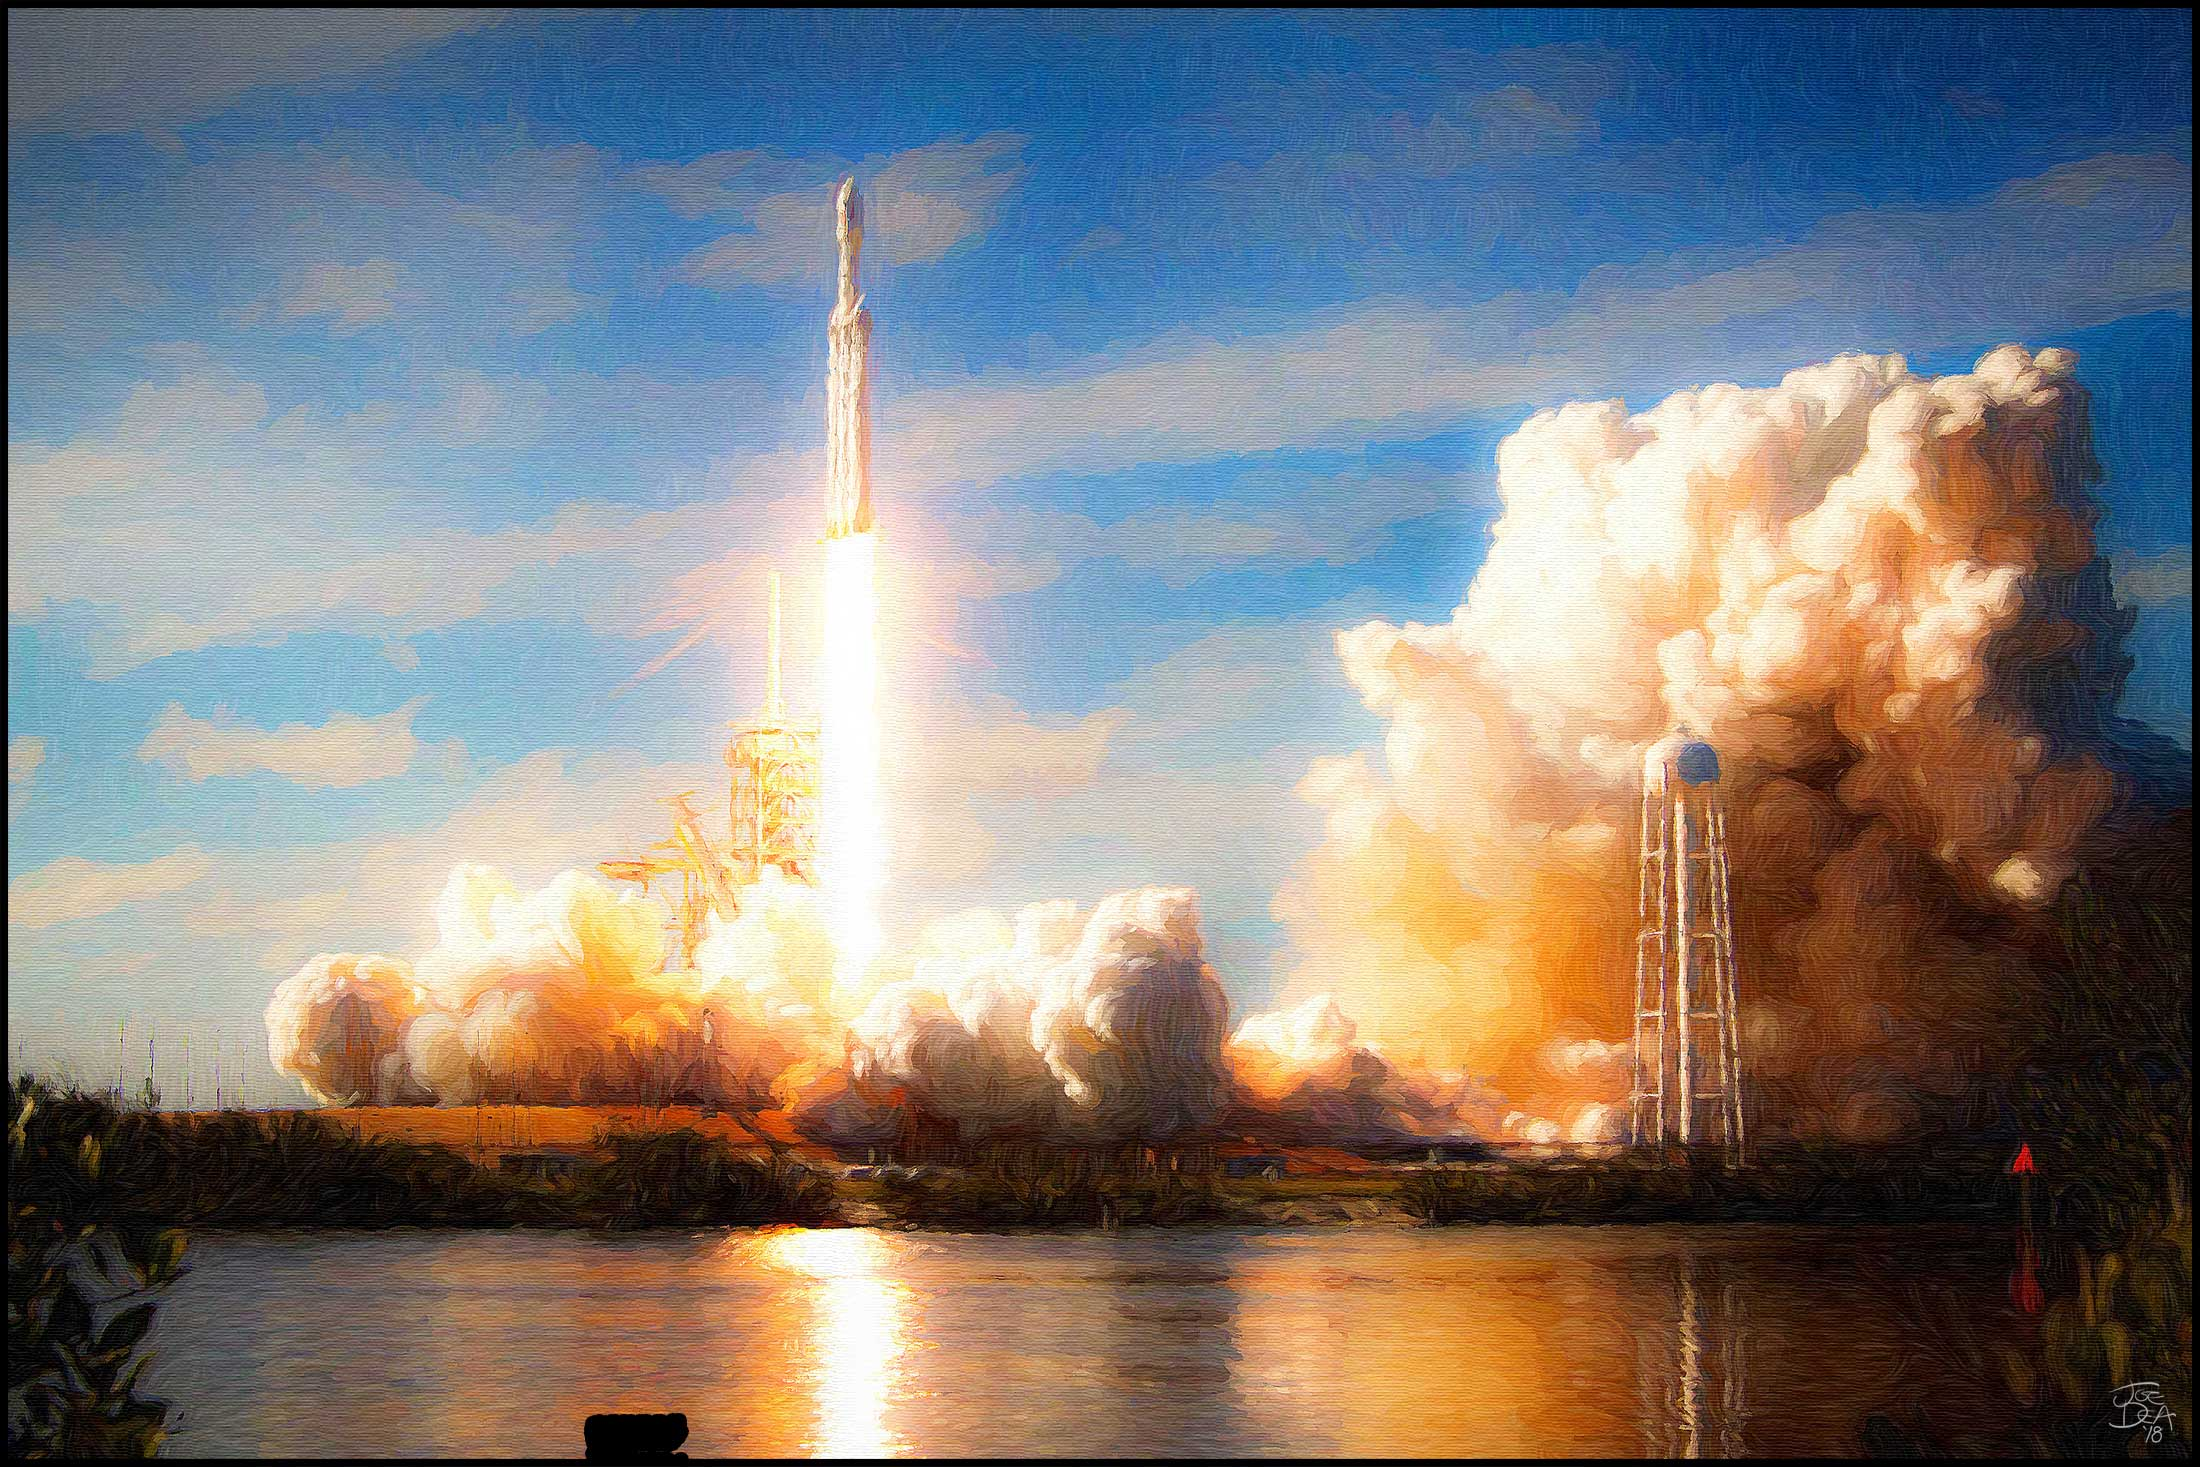 Joe_Dea_SpaceX-Falcon-Heavy-Launch-Painting-1.jpg